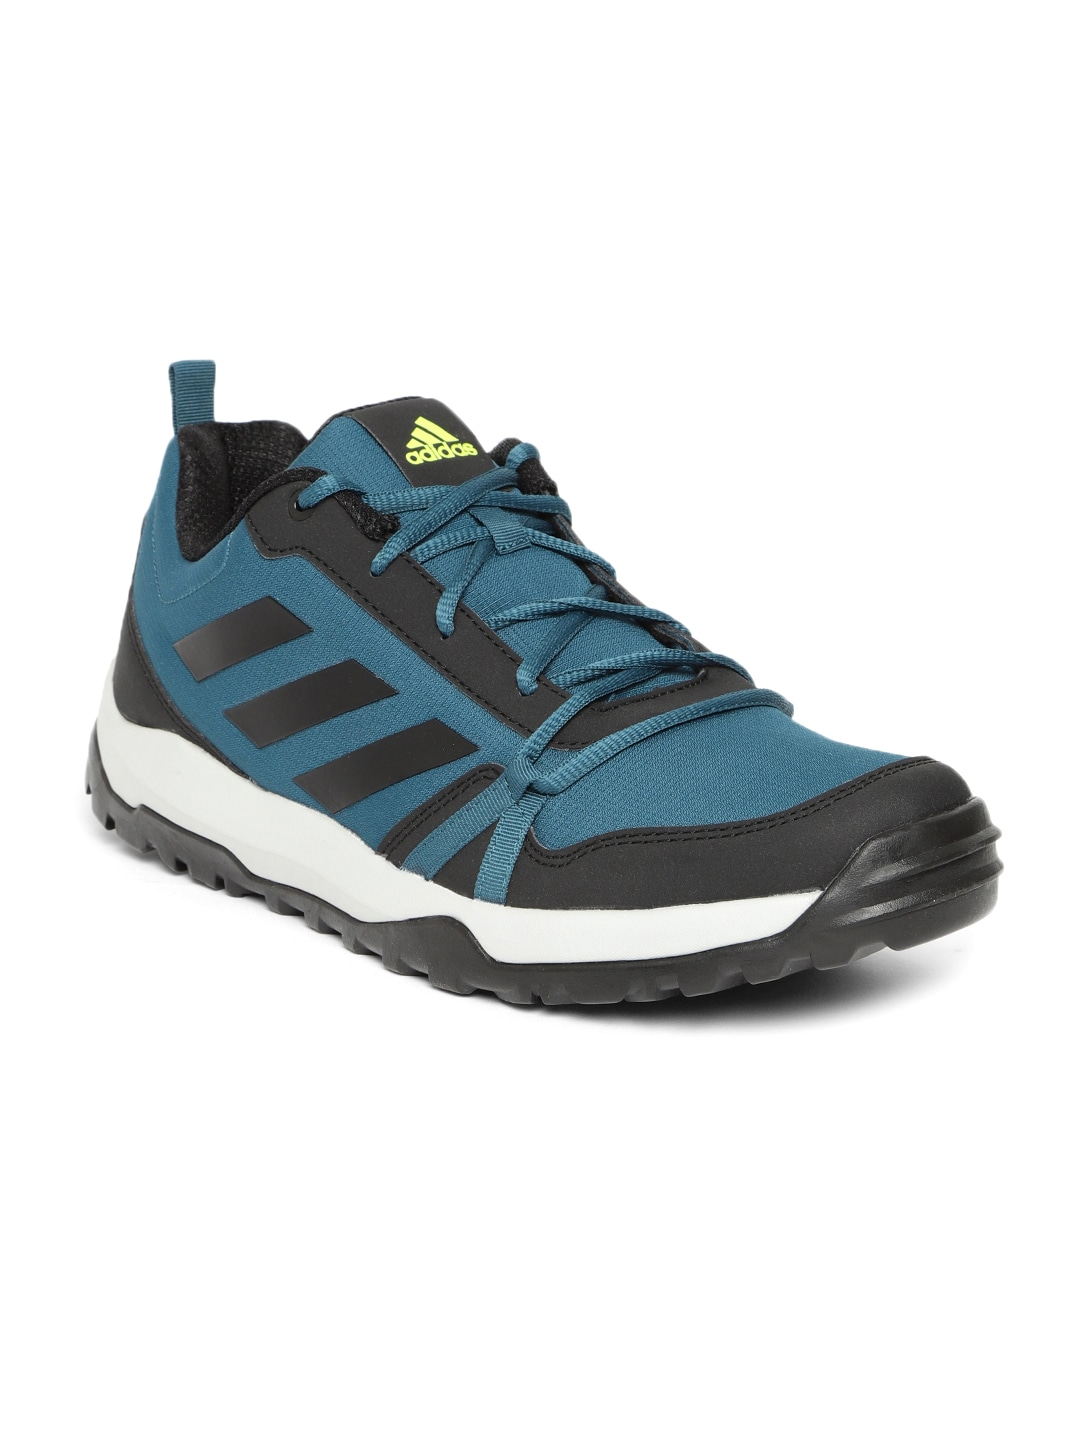 16af6c62bf0c0 adidas - Exclusive adidas Online Store in India at Myntra